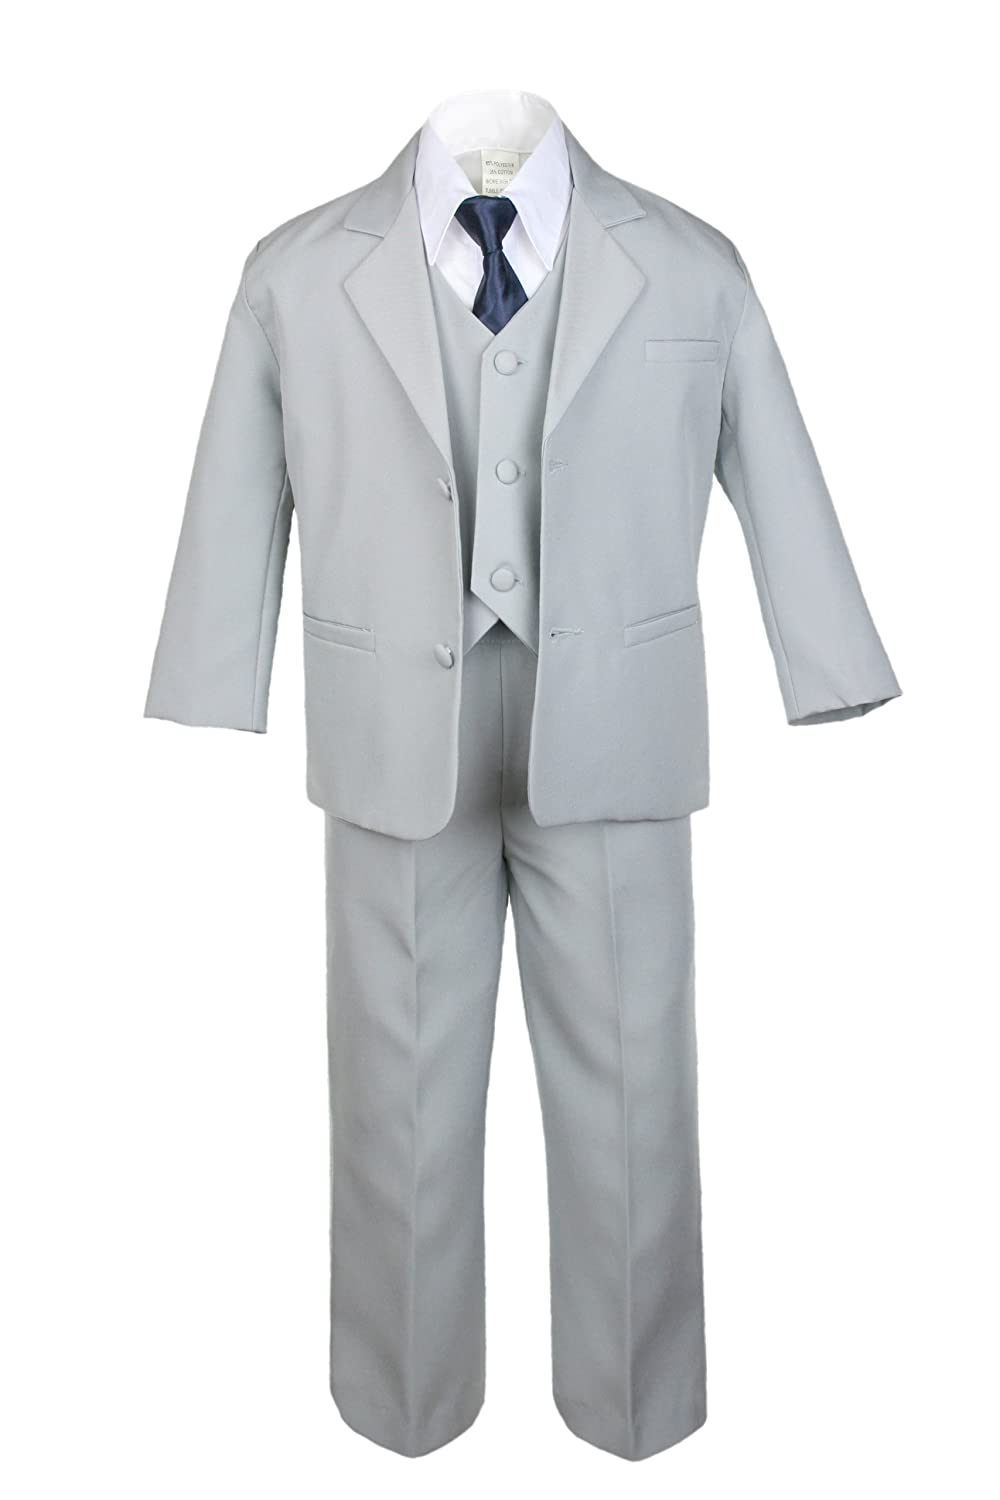 6pc Boy Gray Vest Set Suit with Satin Navy Necktie Outfit Baby to Teen (7)